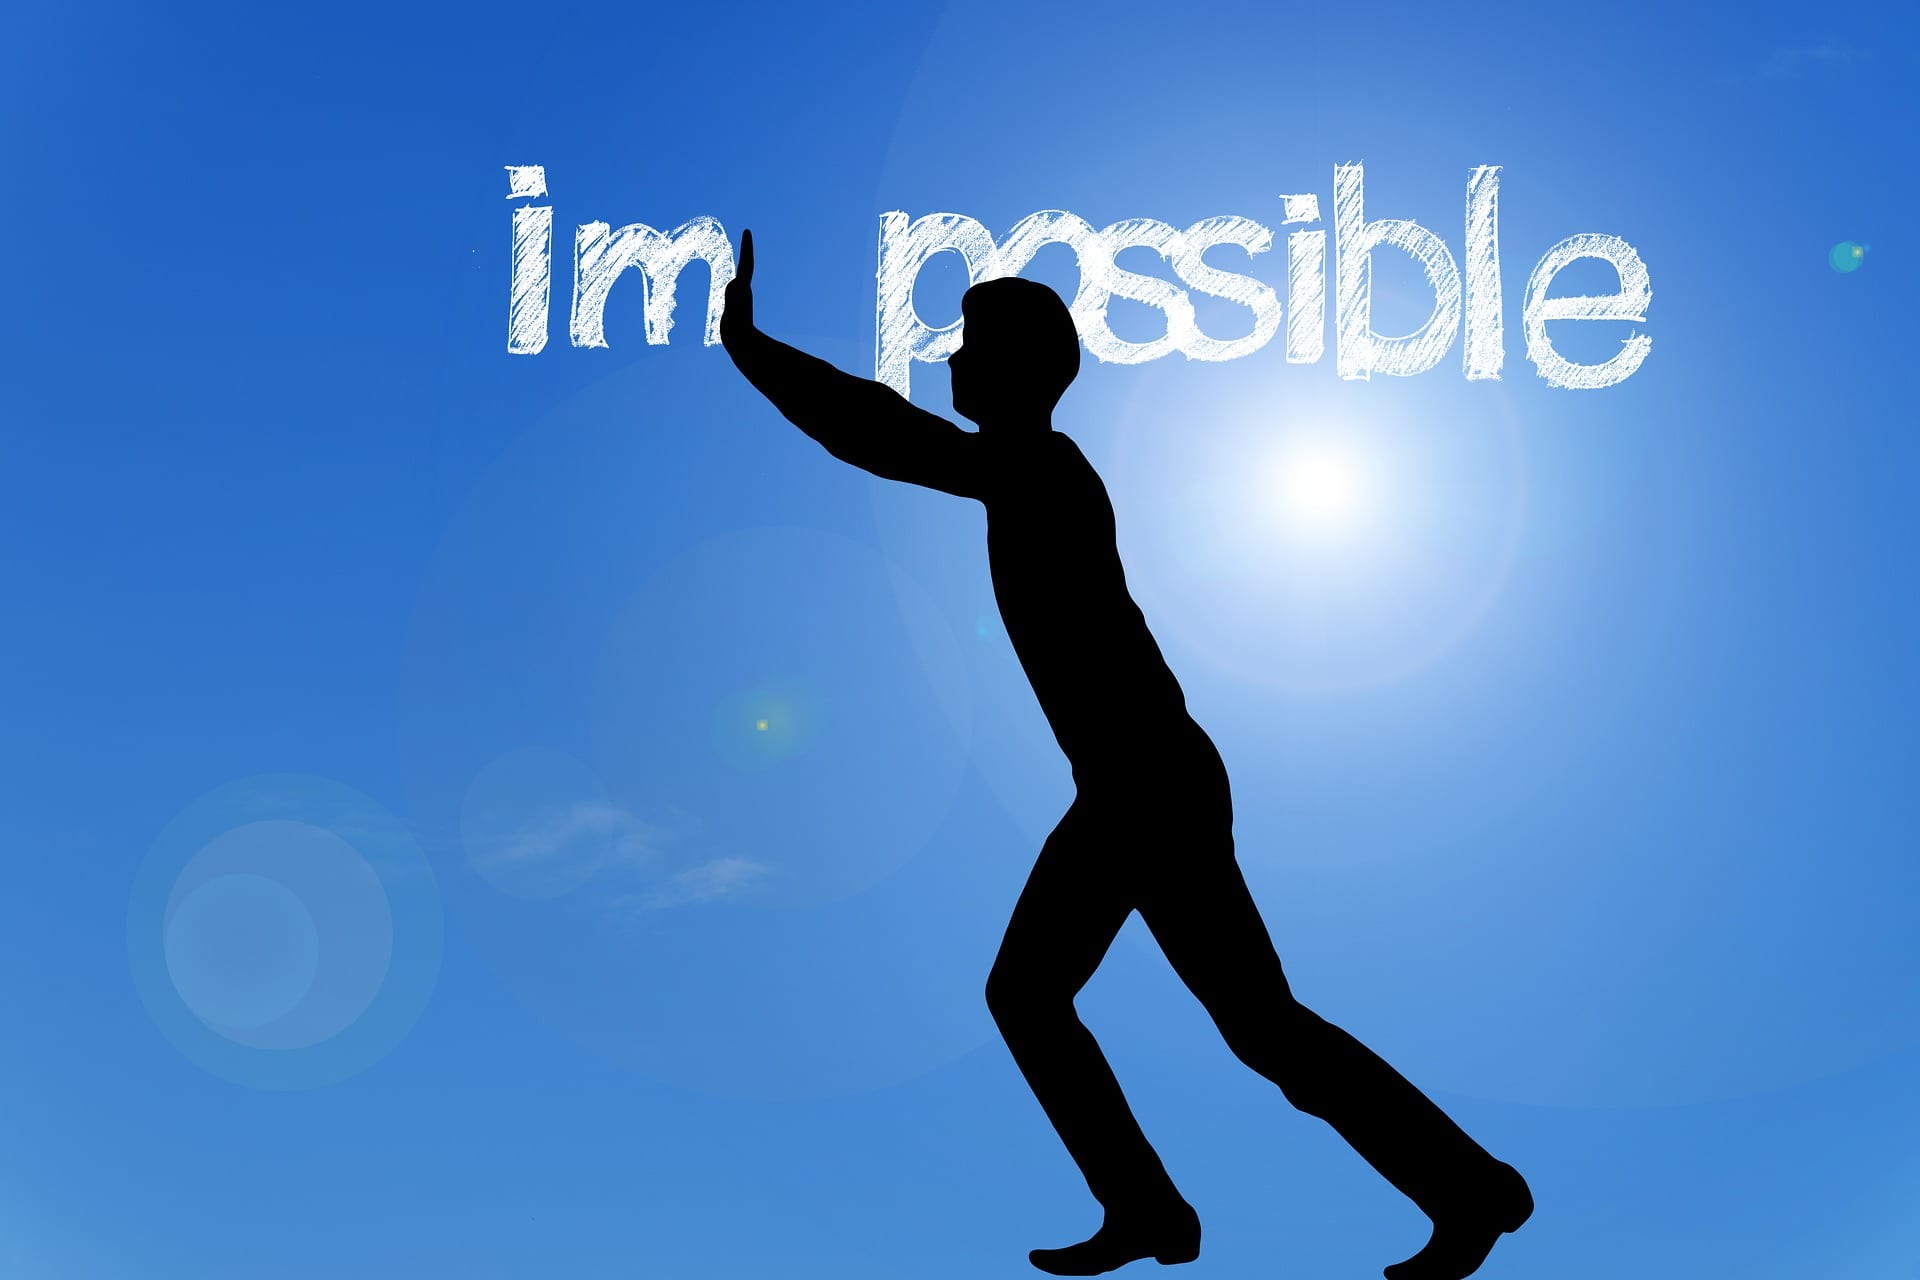 motivation, confiance, possible, impossible, courage